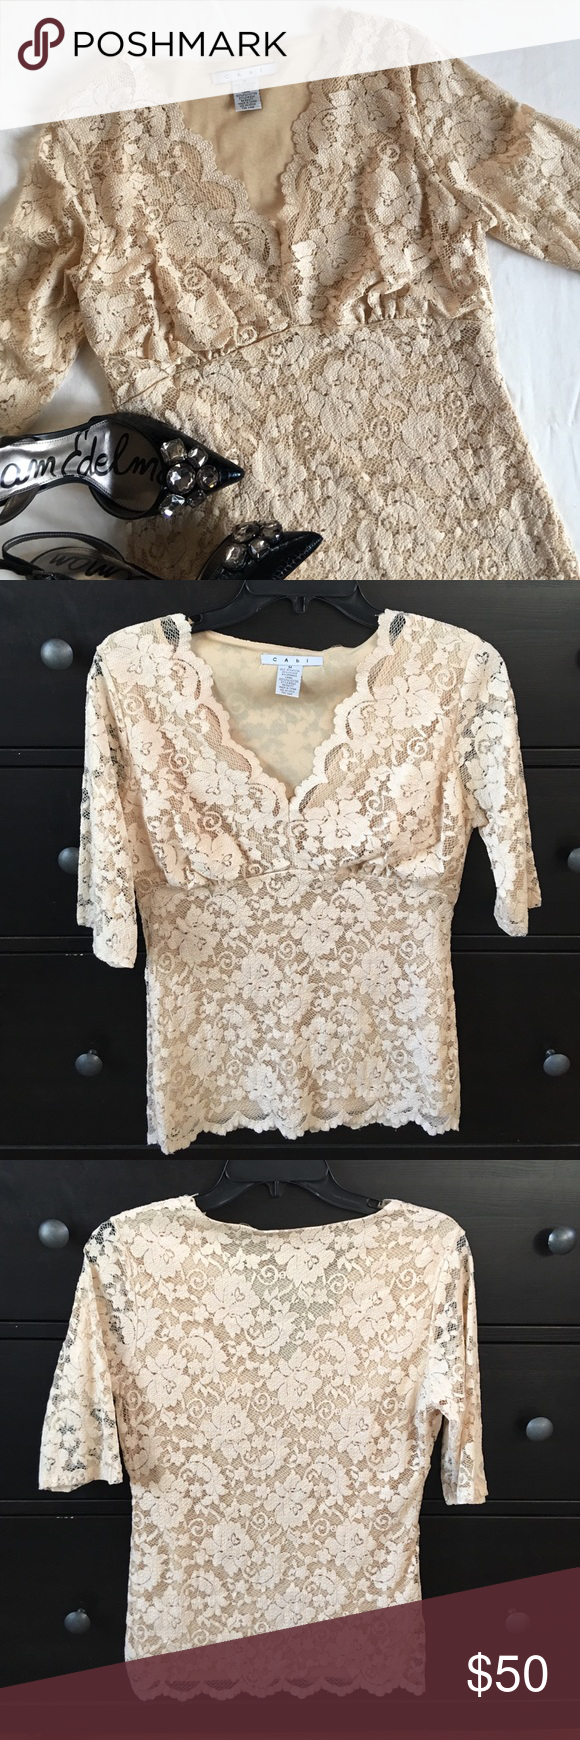 CAbi lace overlay top CAbi lace overlay top. Size medium. Excellent condition. Creamy beige over a beige lining. V neck. Elbow length sleeves. Gathering at bust with an empire type fit. Stretchy and form fitting. One loose thread on lining of neck (pictured), two small pulls in the lining, also in neck area and not noticeable when worn. Perfect under a blazer for work or with jeans for a night out. 61% nylon, 35% viscose, 4% spandex. Lining 100% polyester. CAbi Tops Blouses